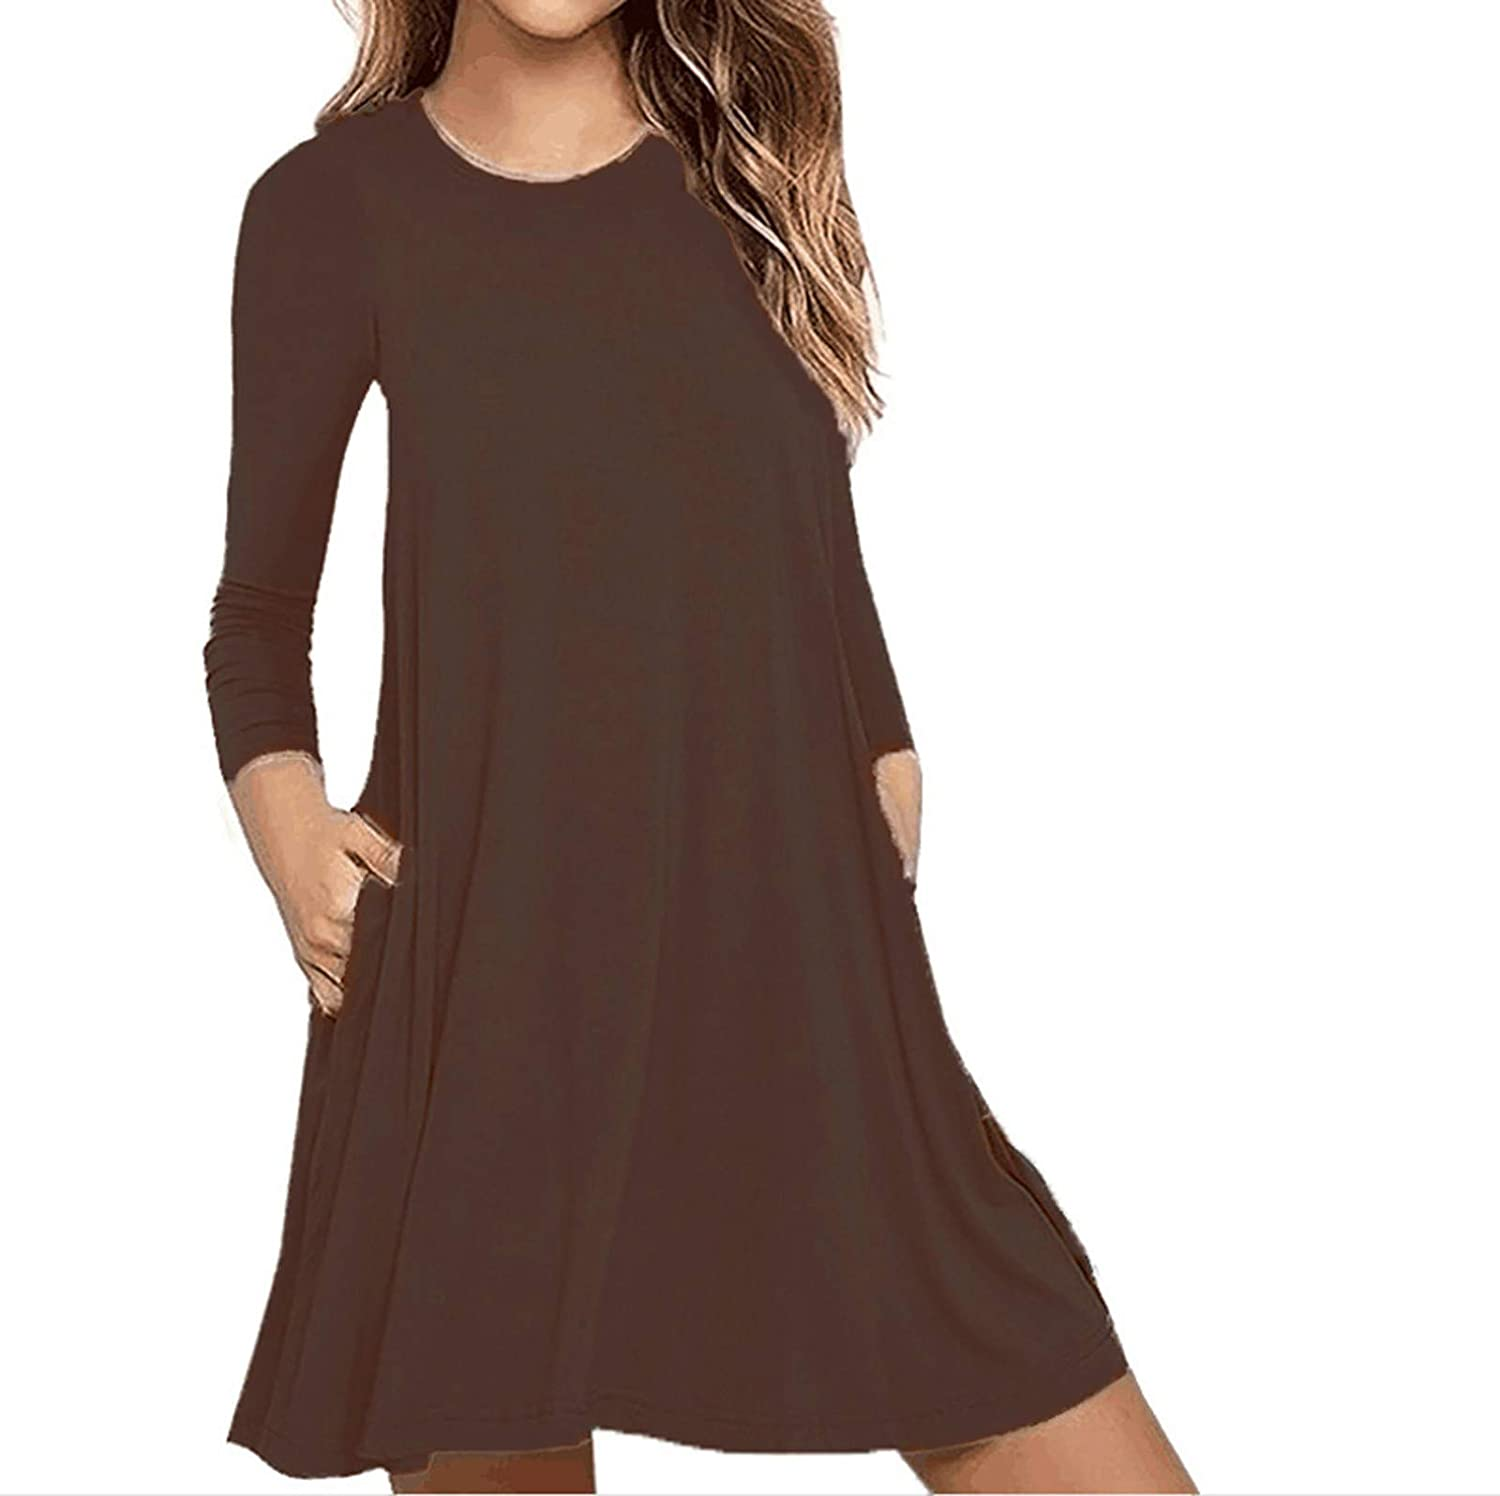 PAPIYON Womens Solid Crew Neck Summer Dress Long Sleeve Casual Swing Cover UP Daily Ladies Short Dress with Pockets